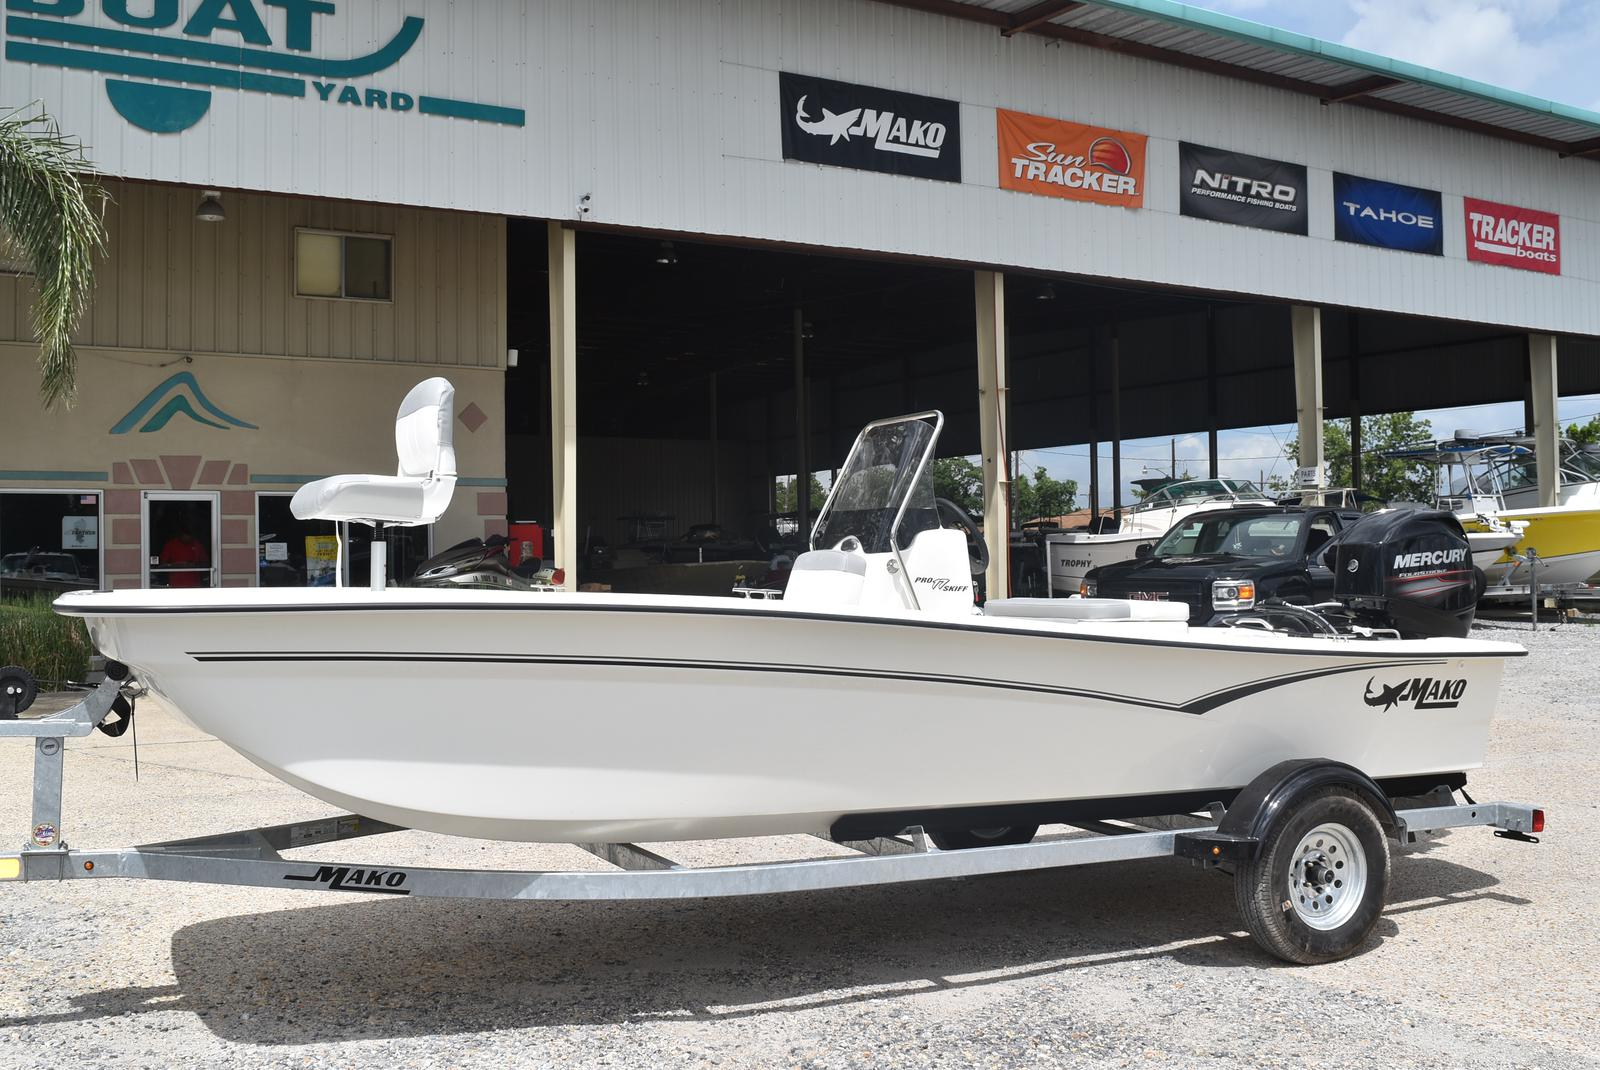 2020 Mako boat for sale, model of the boat is Pro Skiff 17, 75 ELPT & Image # 79 of 702